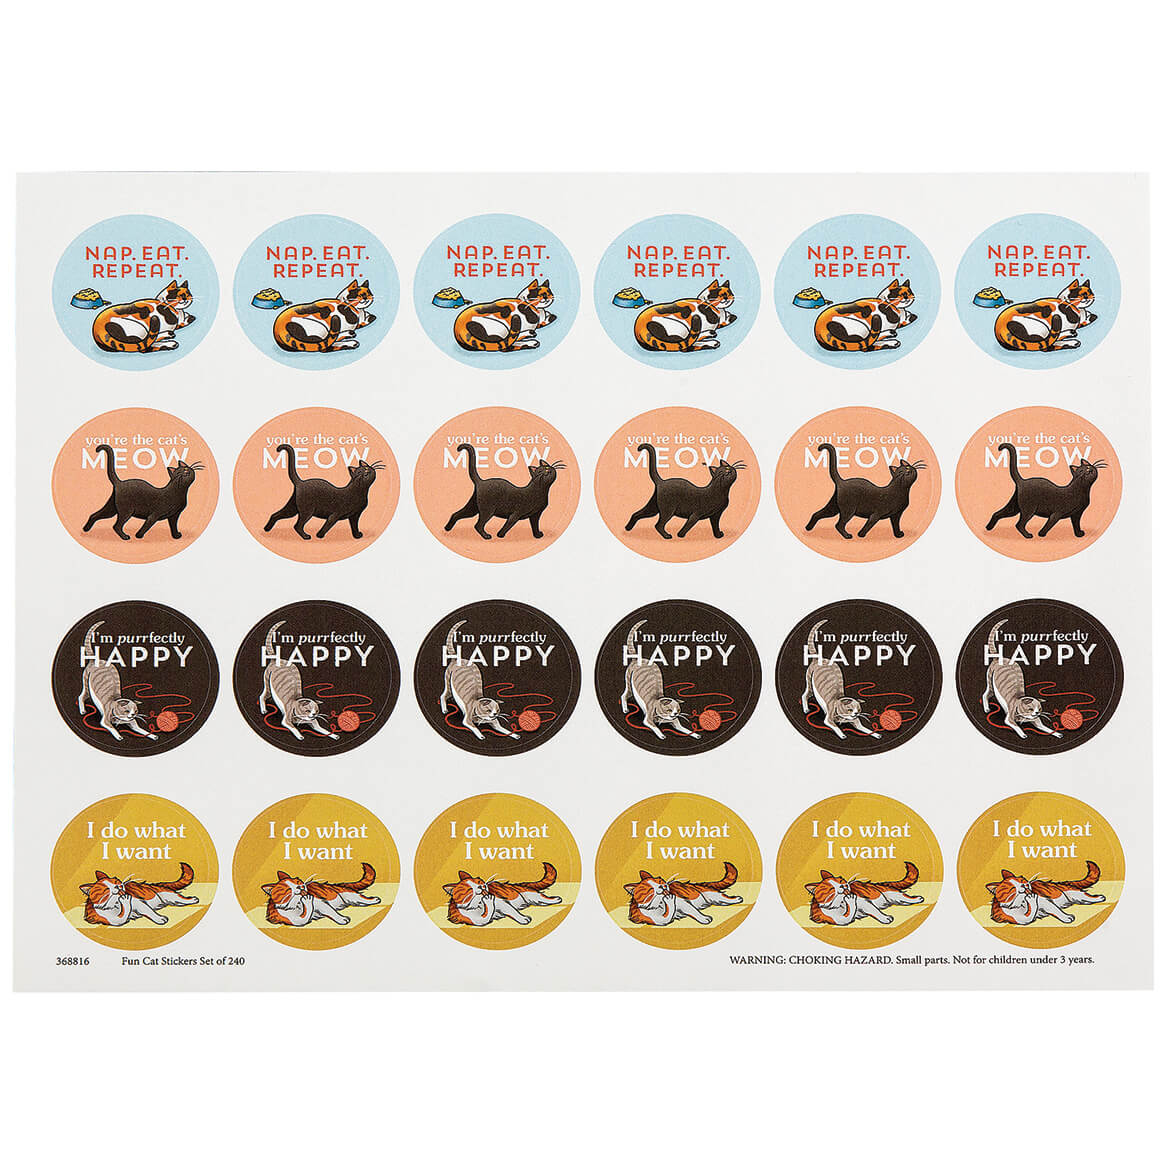 Fun Cats Stickers Set of 240-368816